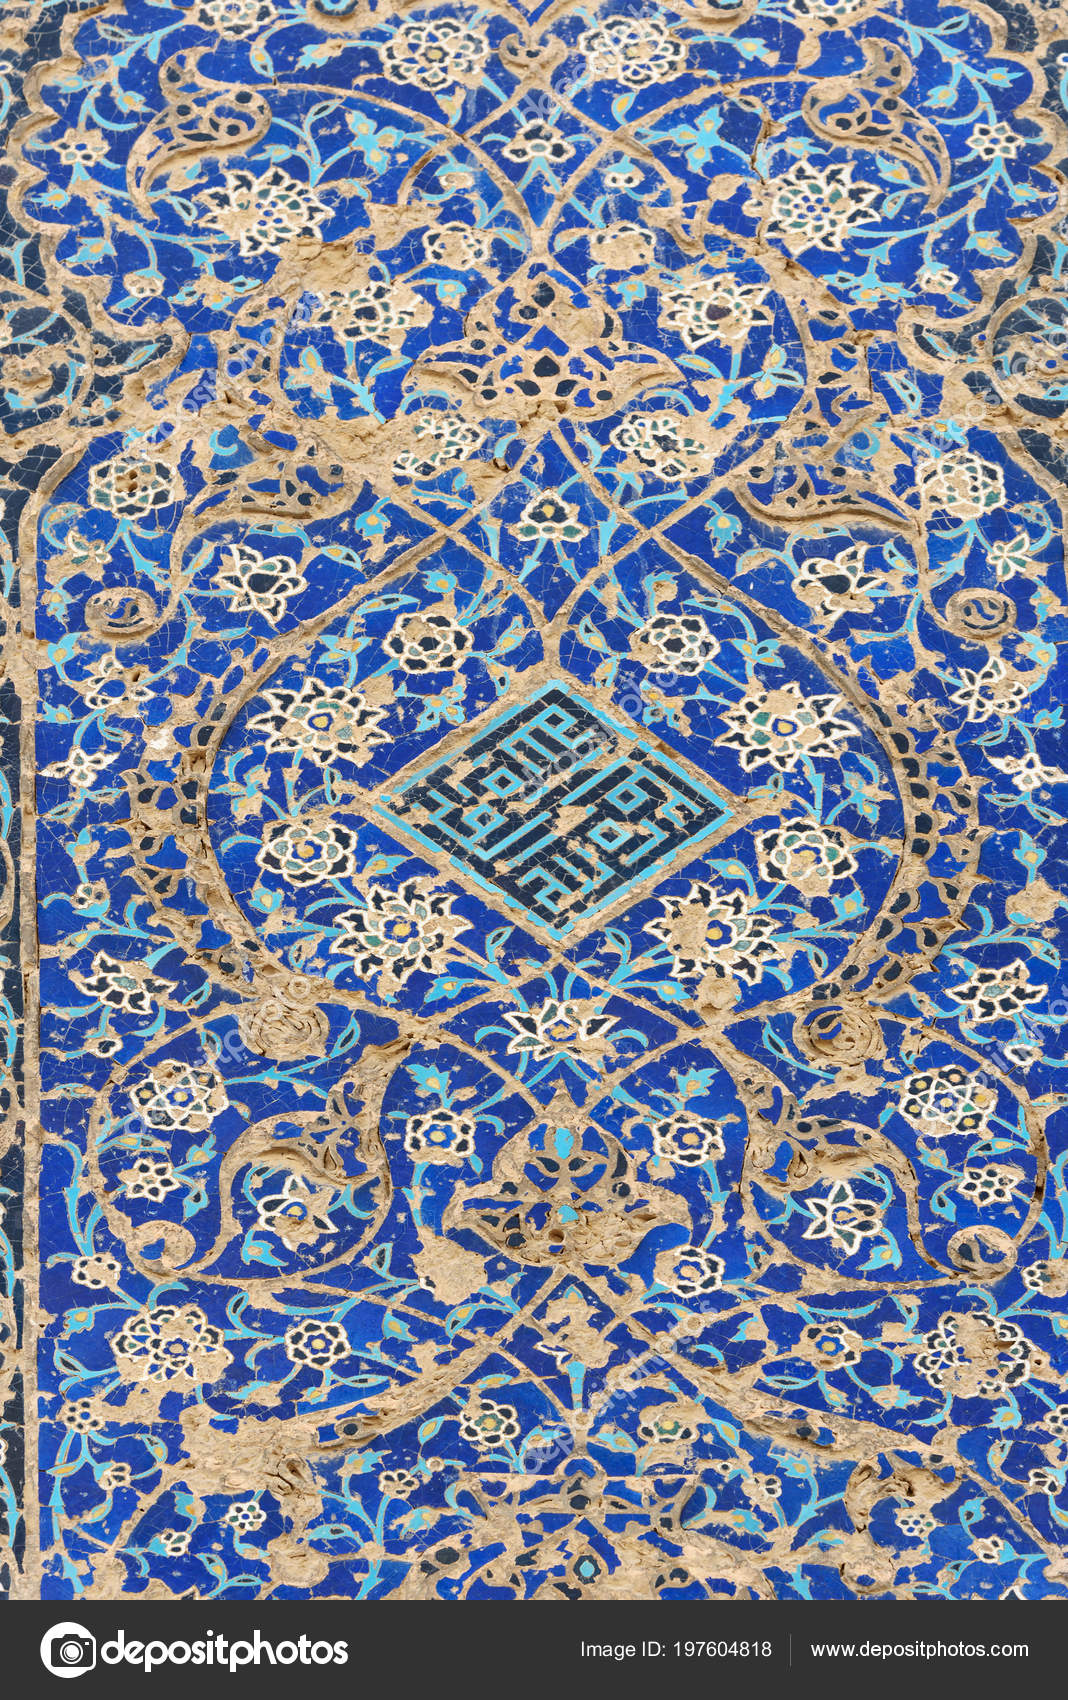 Remains Decorated Blue Mosaic Tiles Wall Entrance Blue Mosque Mosque ...